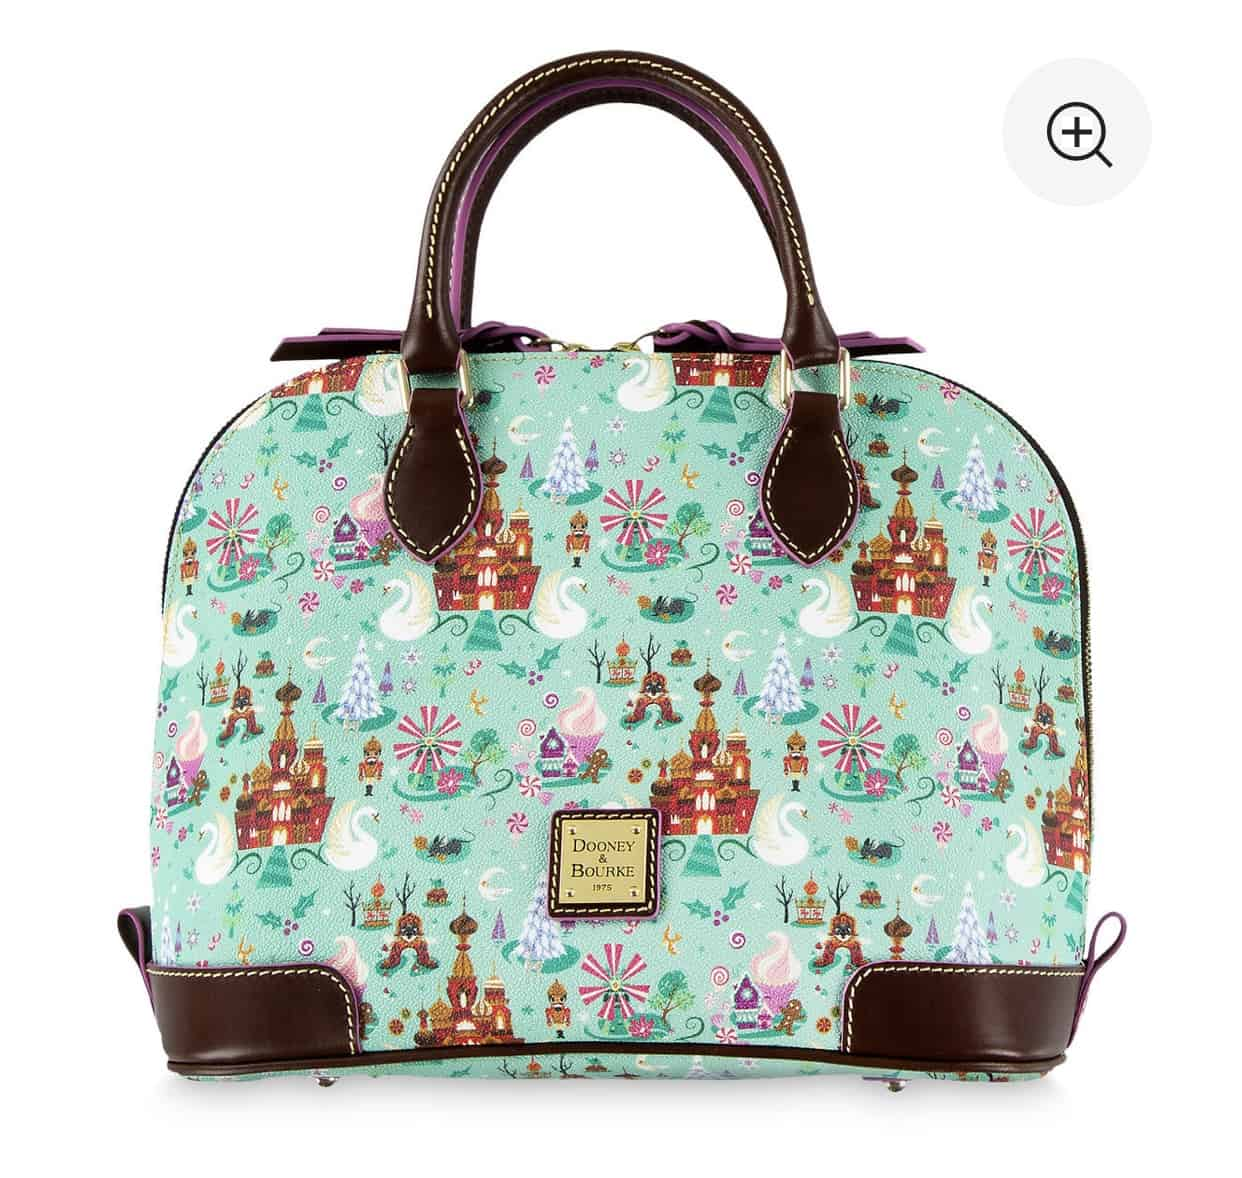 Dooney and Bourke Disney Bags 3